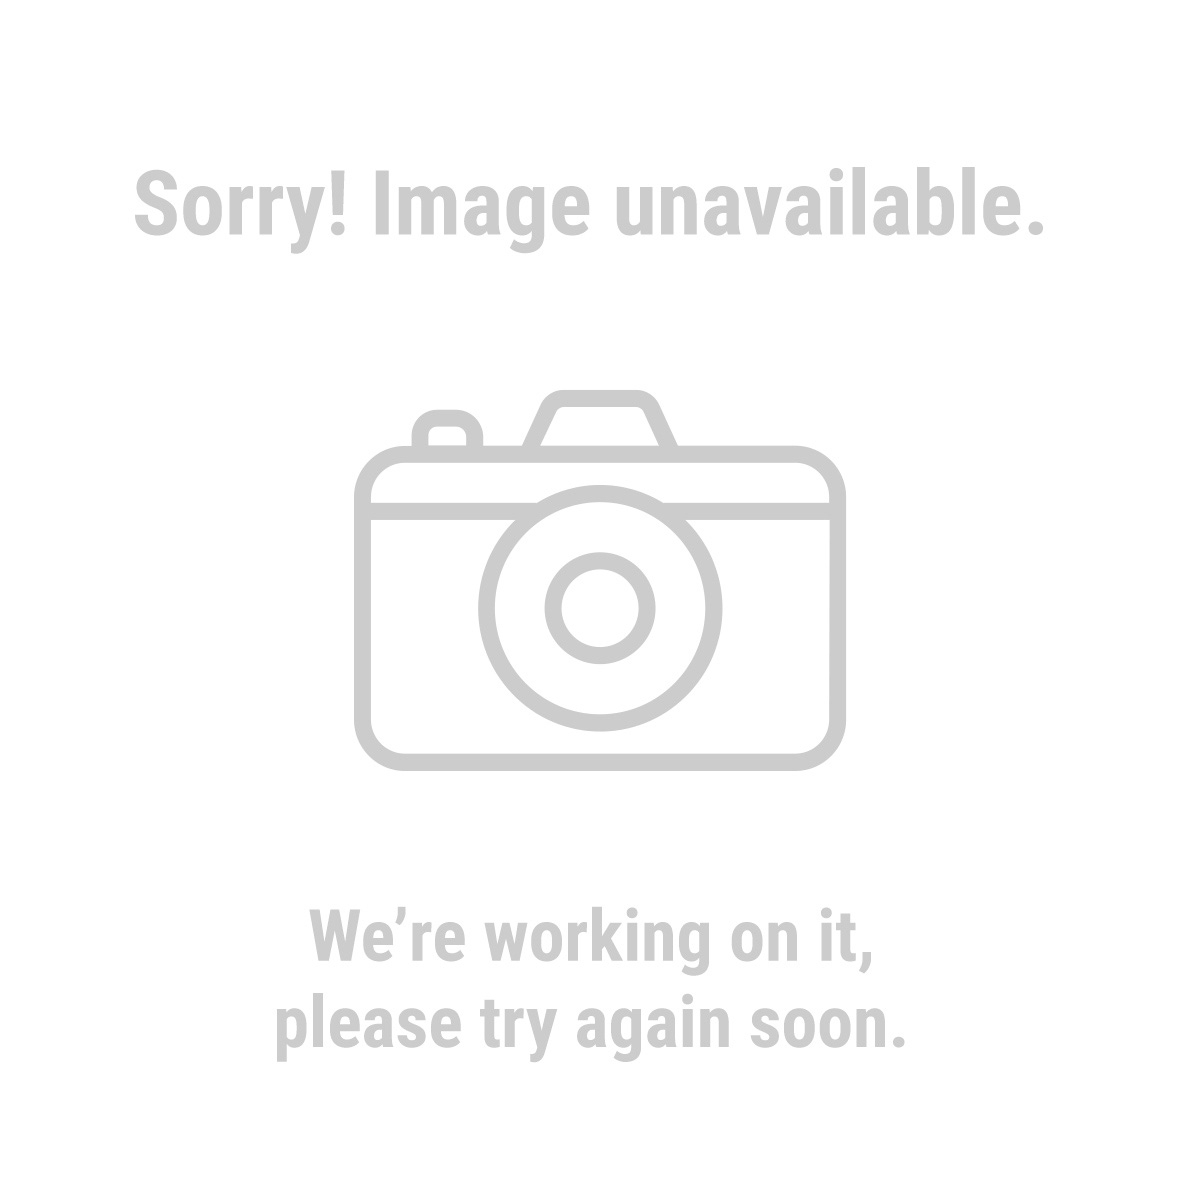 Thunderbolt Magnum 68130 4 Pack CR2025 Lithium Button Cell Batteries